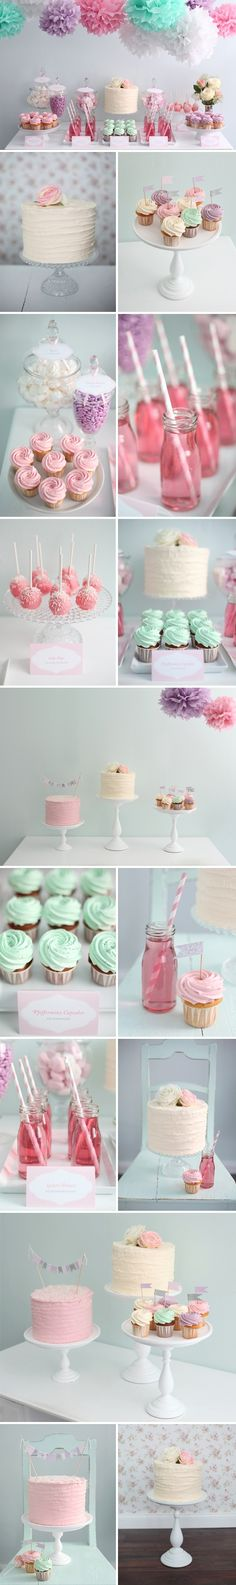 This could be a cute 1st birthday for your baby girl!